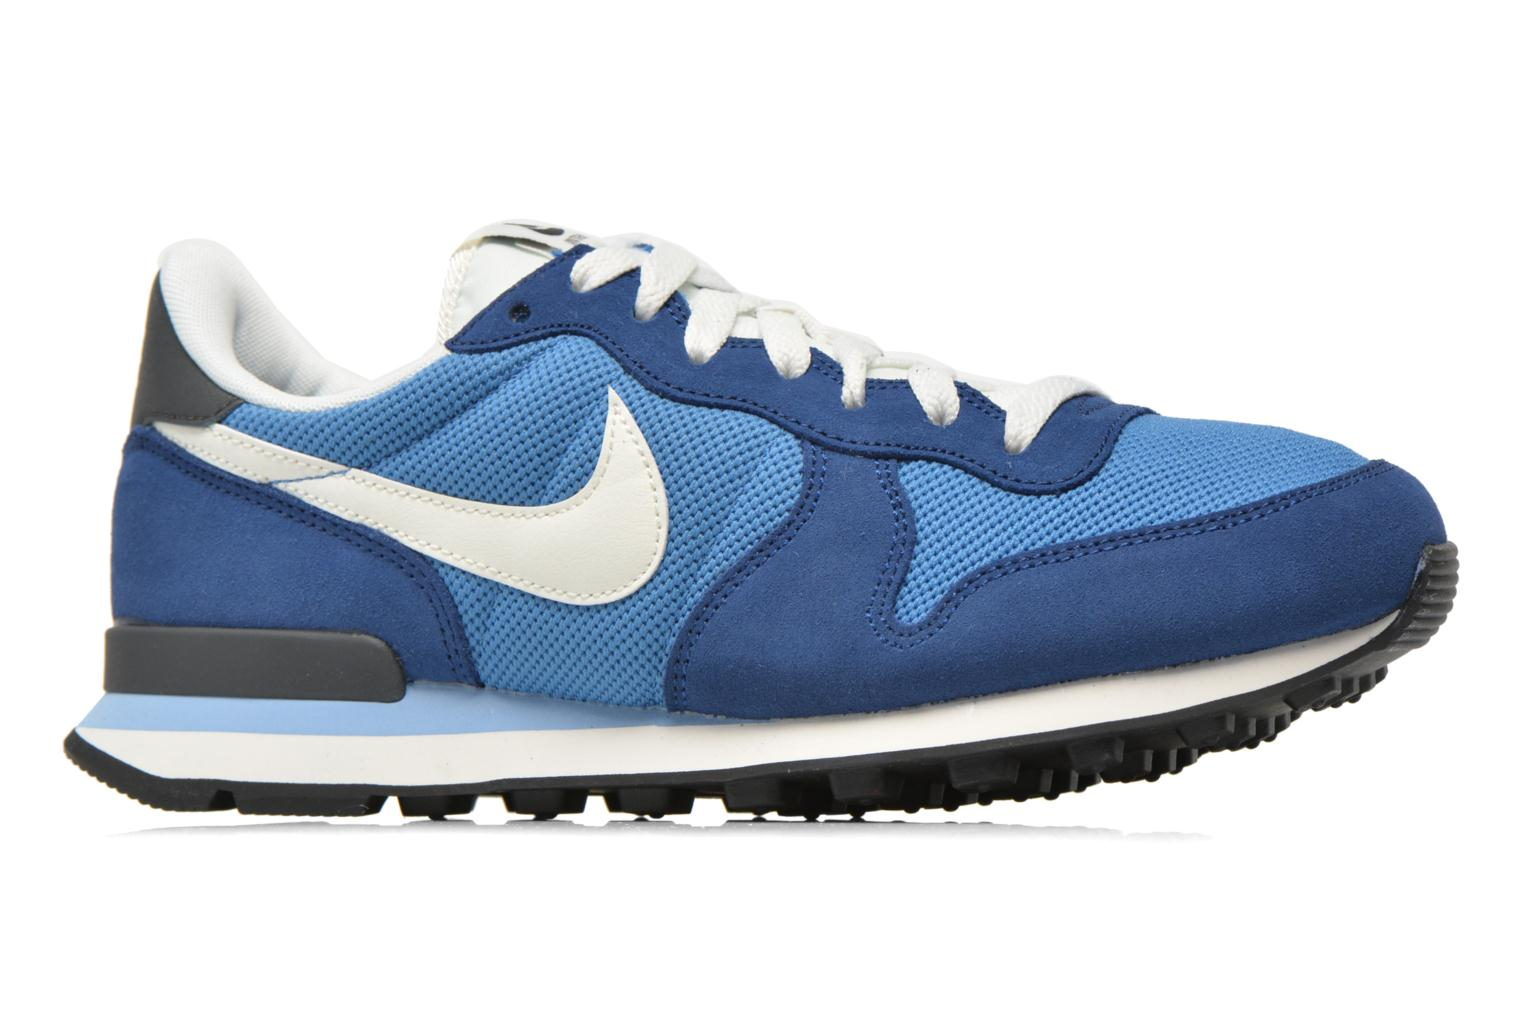 Nike Internationalist Star Blue/Sail-Cstl Bl-Anthrct